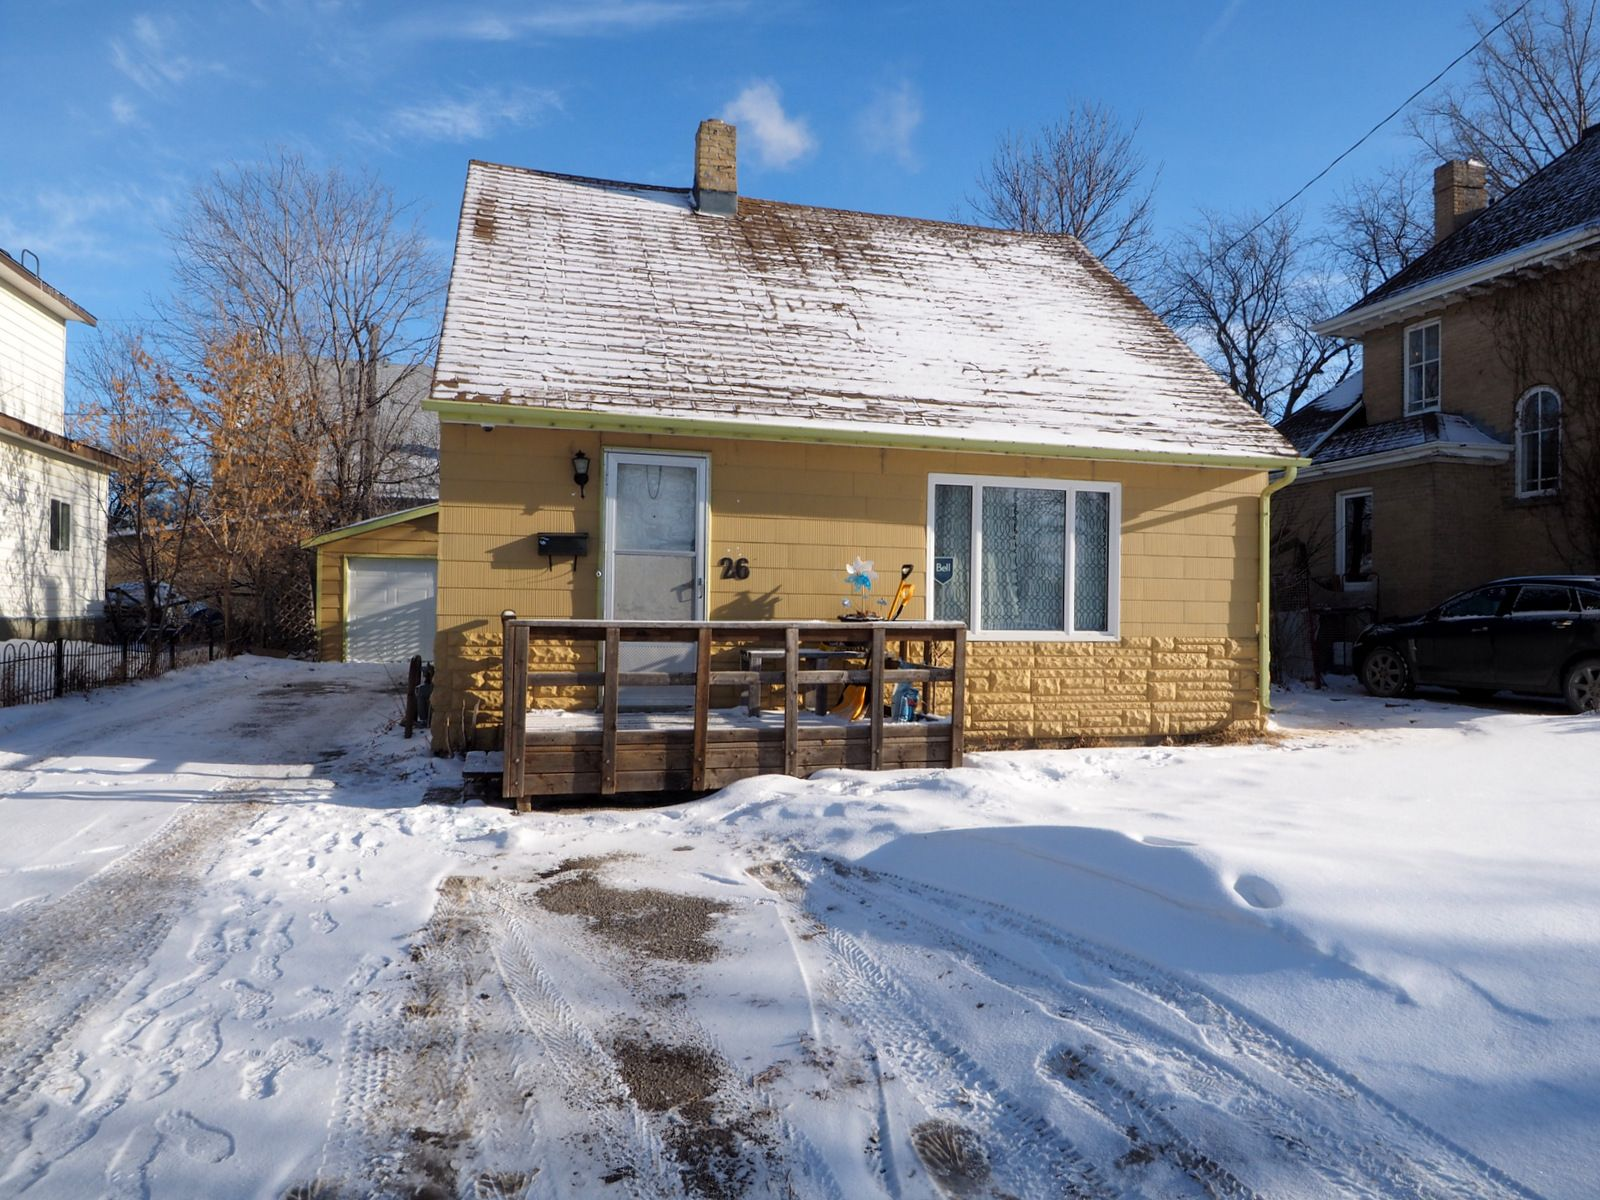 Main Photo: 26 3rd Street SW in Portage la Prairie: House for sale : MLS®# 202101055